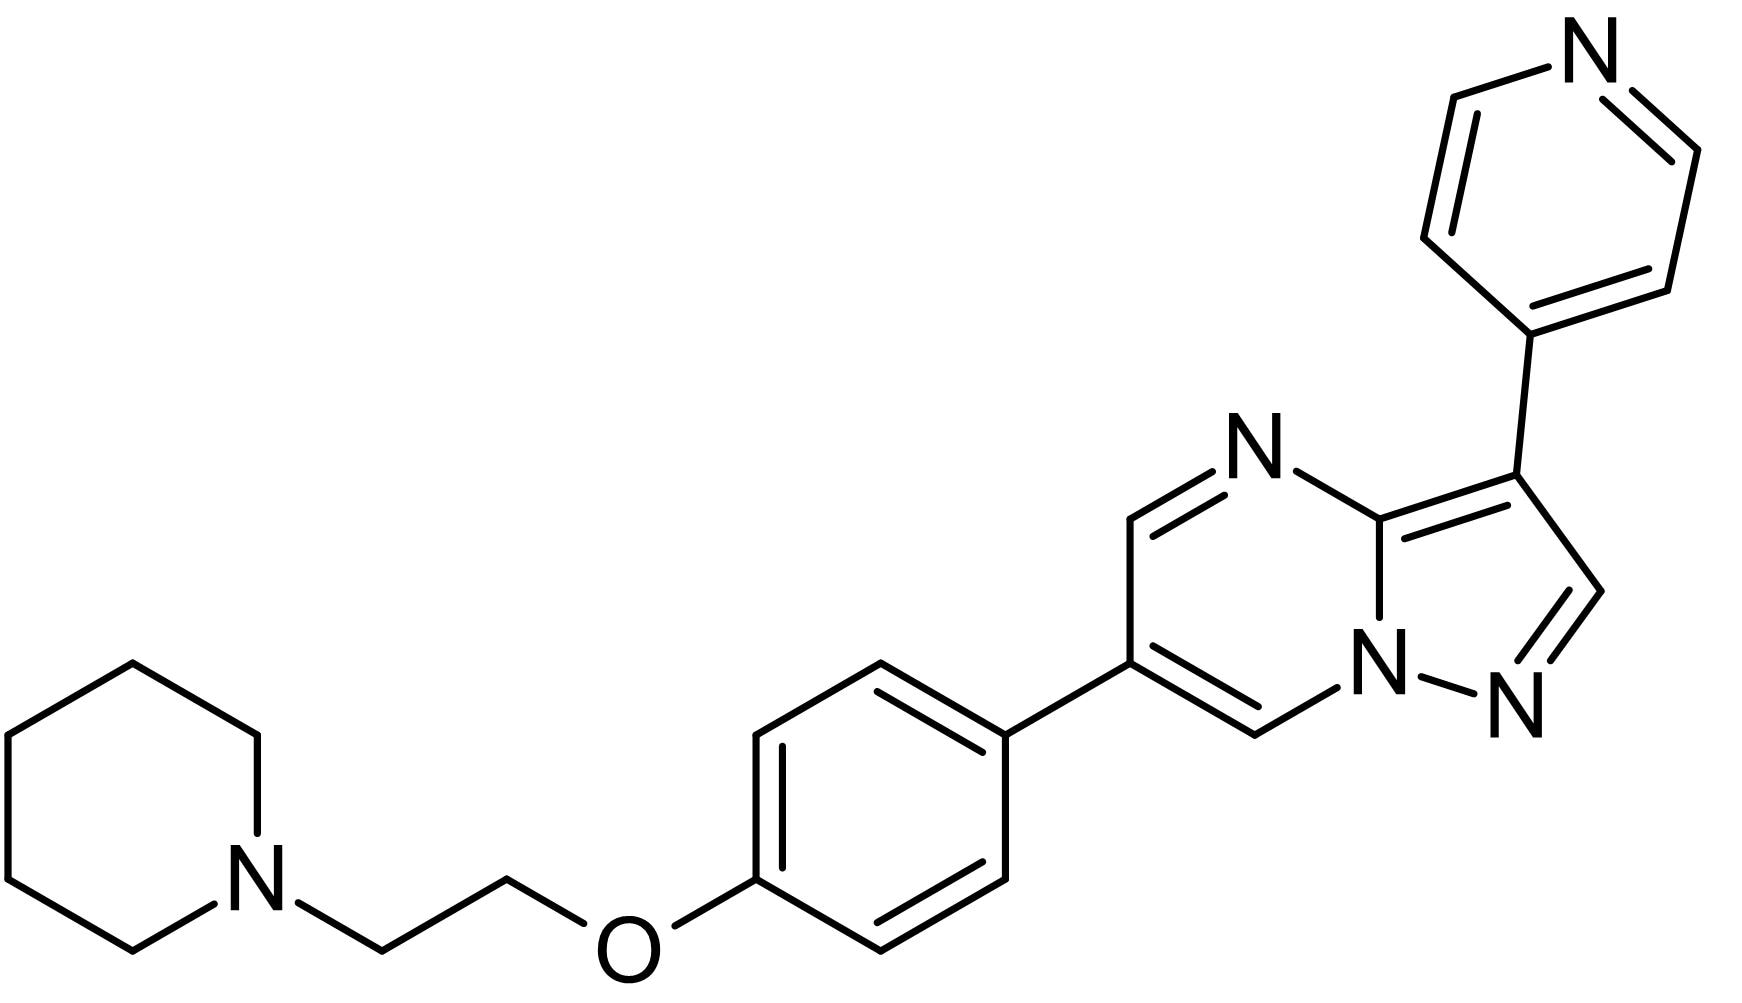 Chemical Structure - Dorsomorphin (Compound C) (DMSO solution), AMP-kinase inhibitor (ab146597)